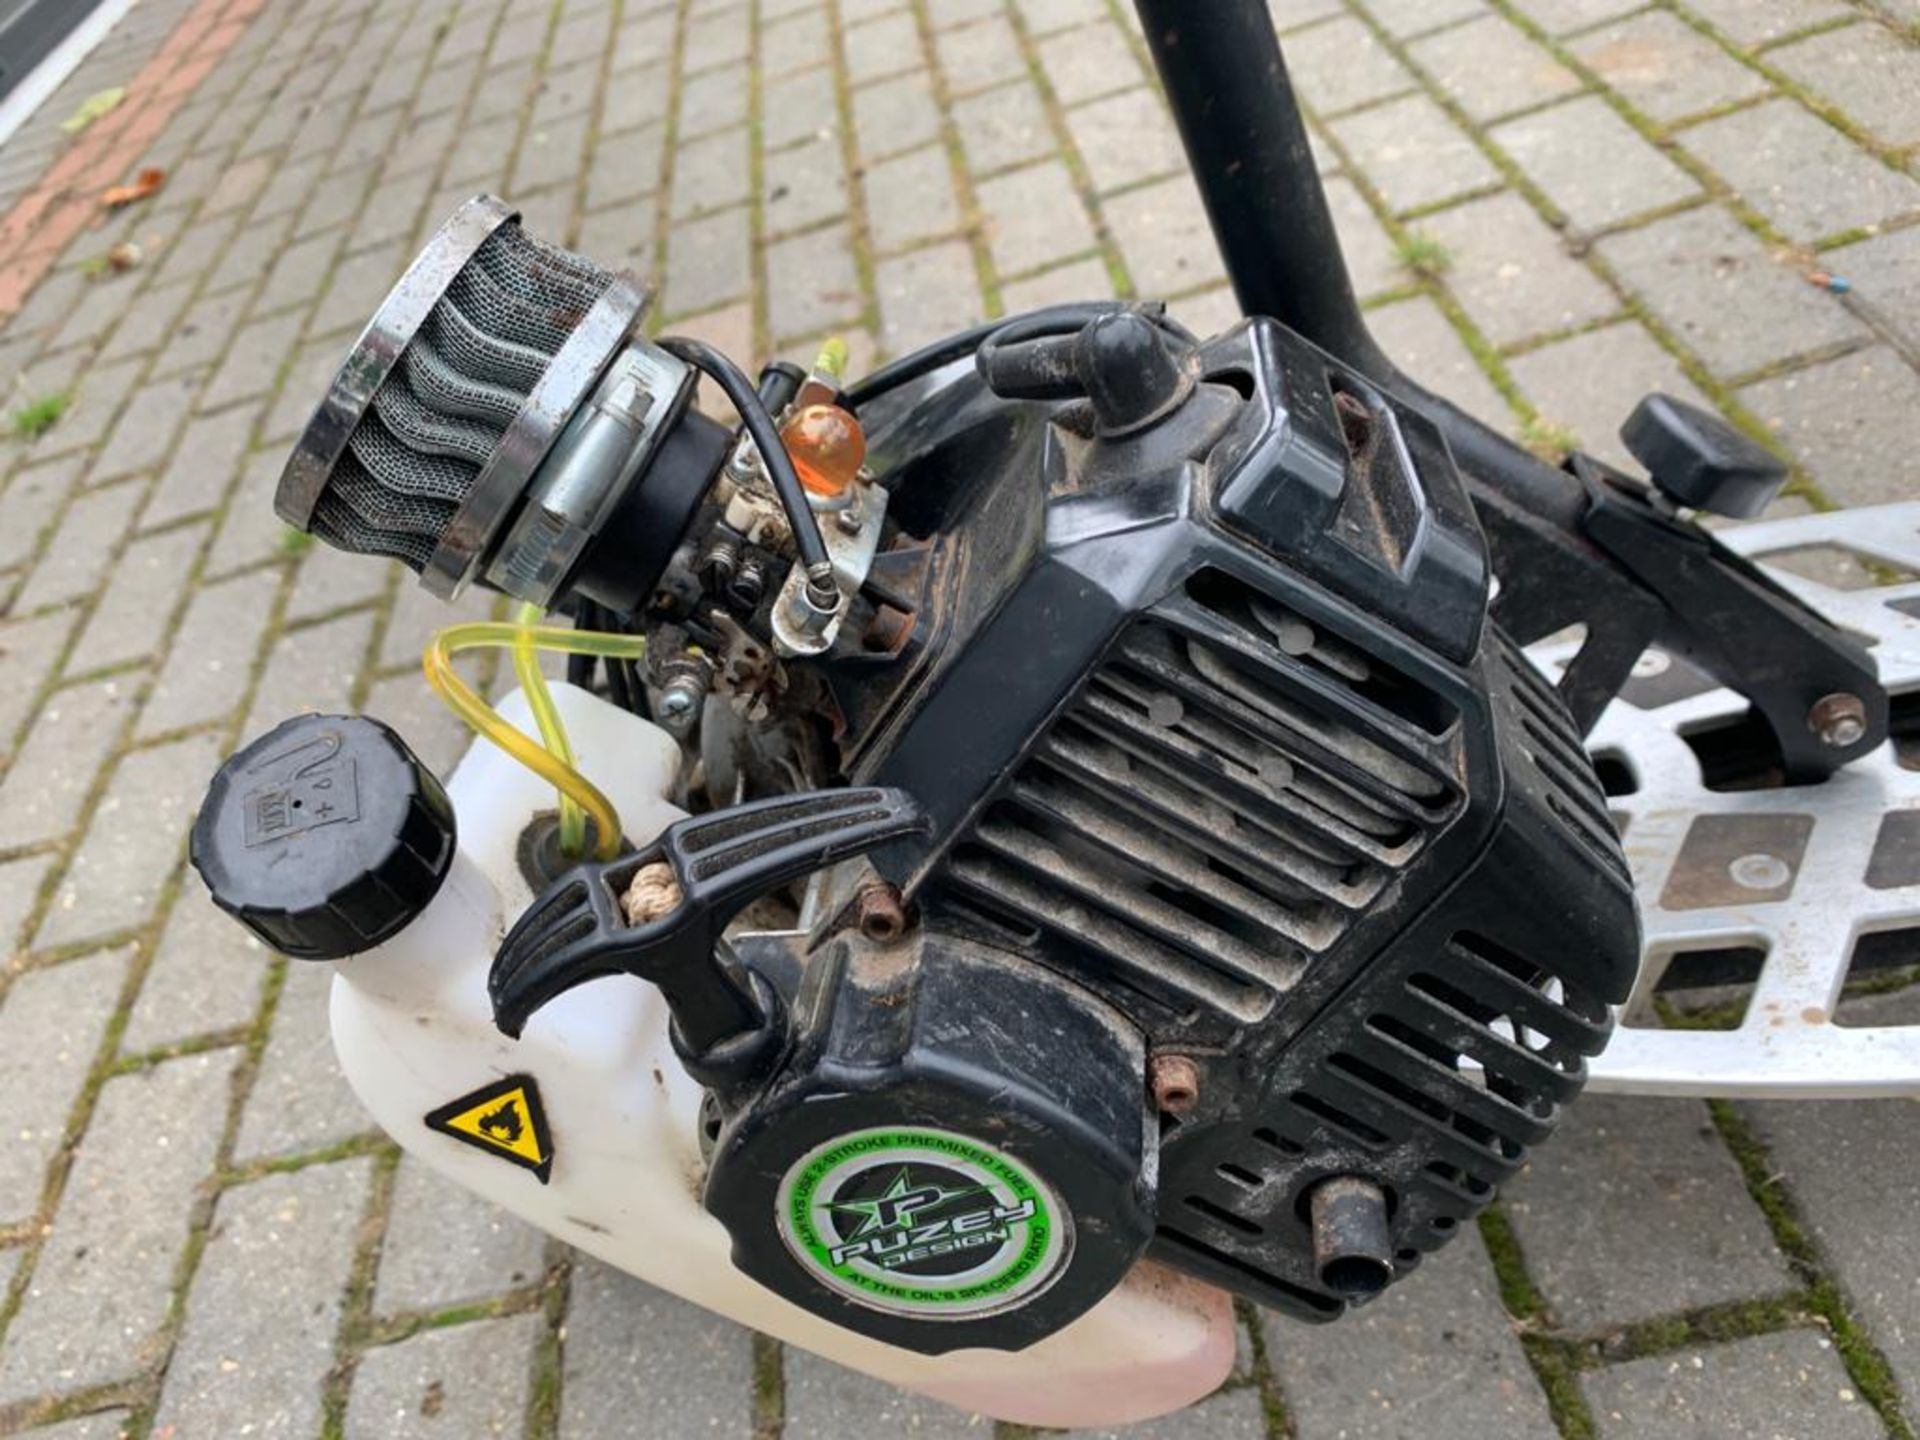 2-STROKE RIDE ON SCOOTER, RUNS AND DRIVES AS IT SHOULD *PLUS VAT* - Image 7 of 8